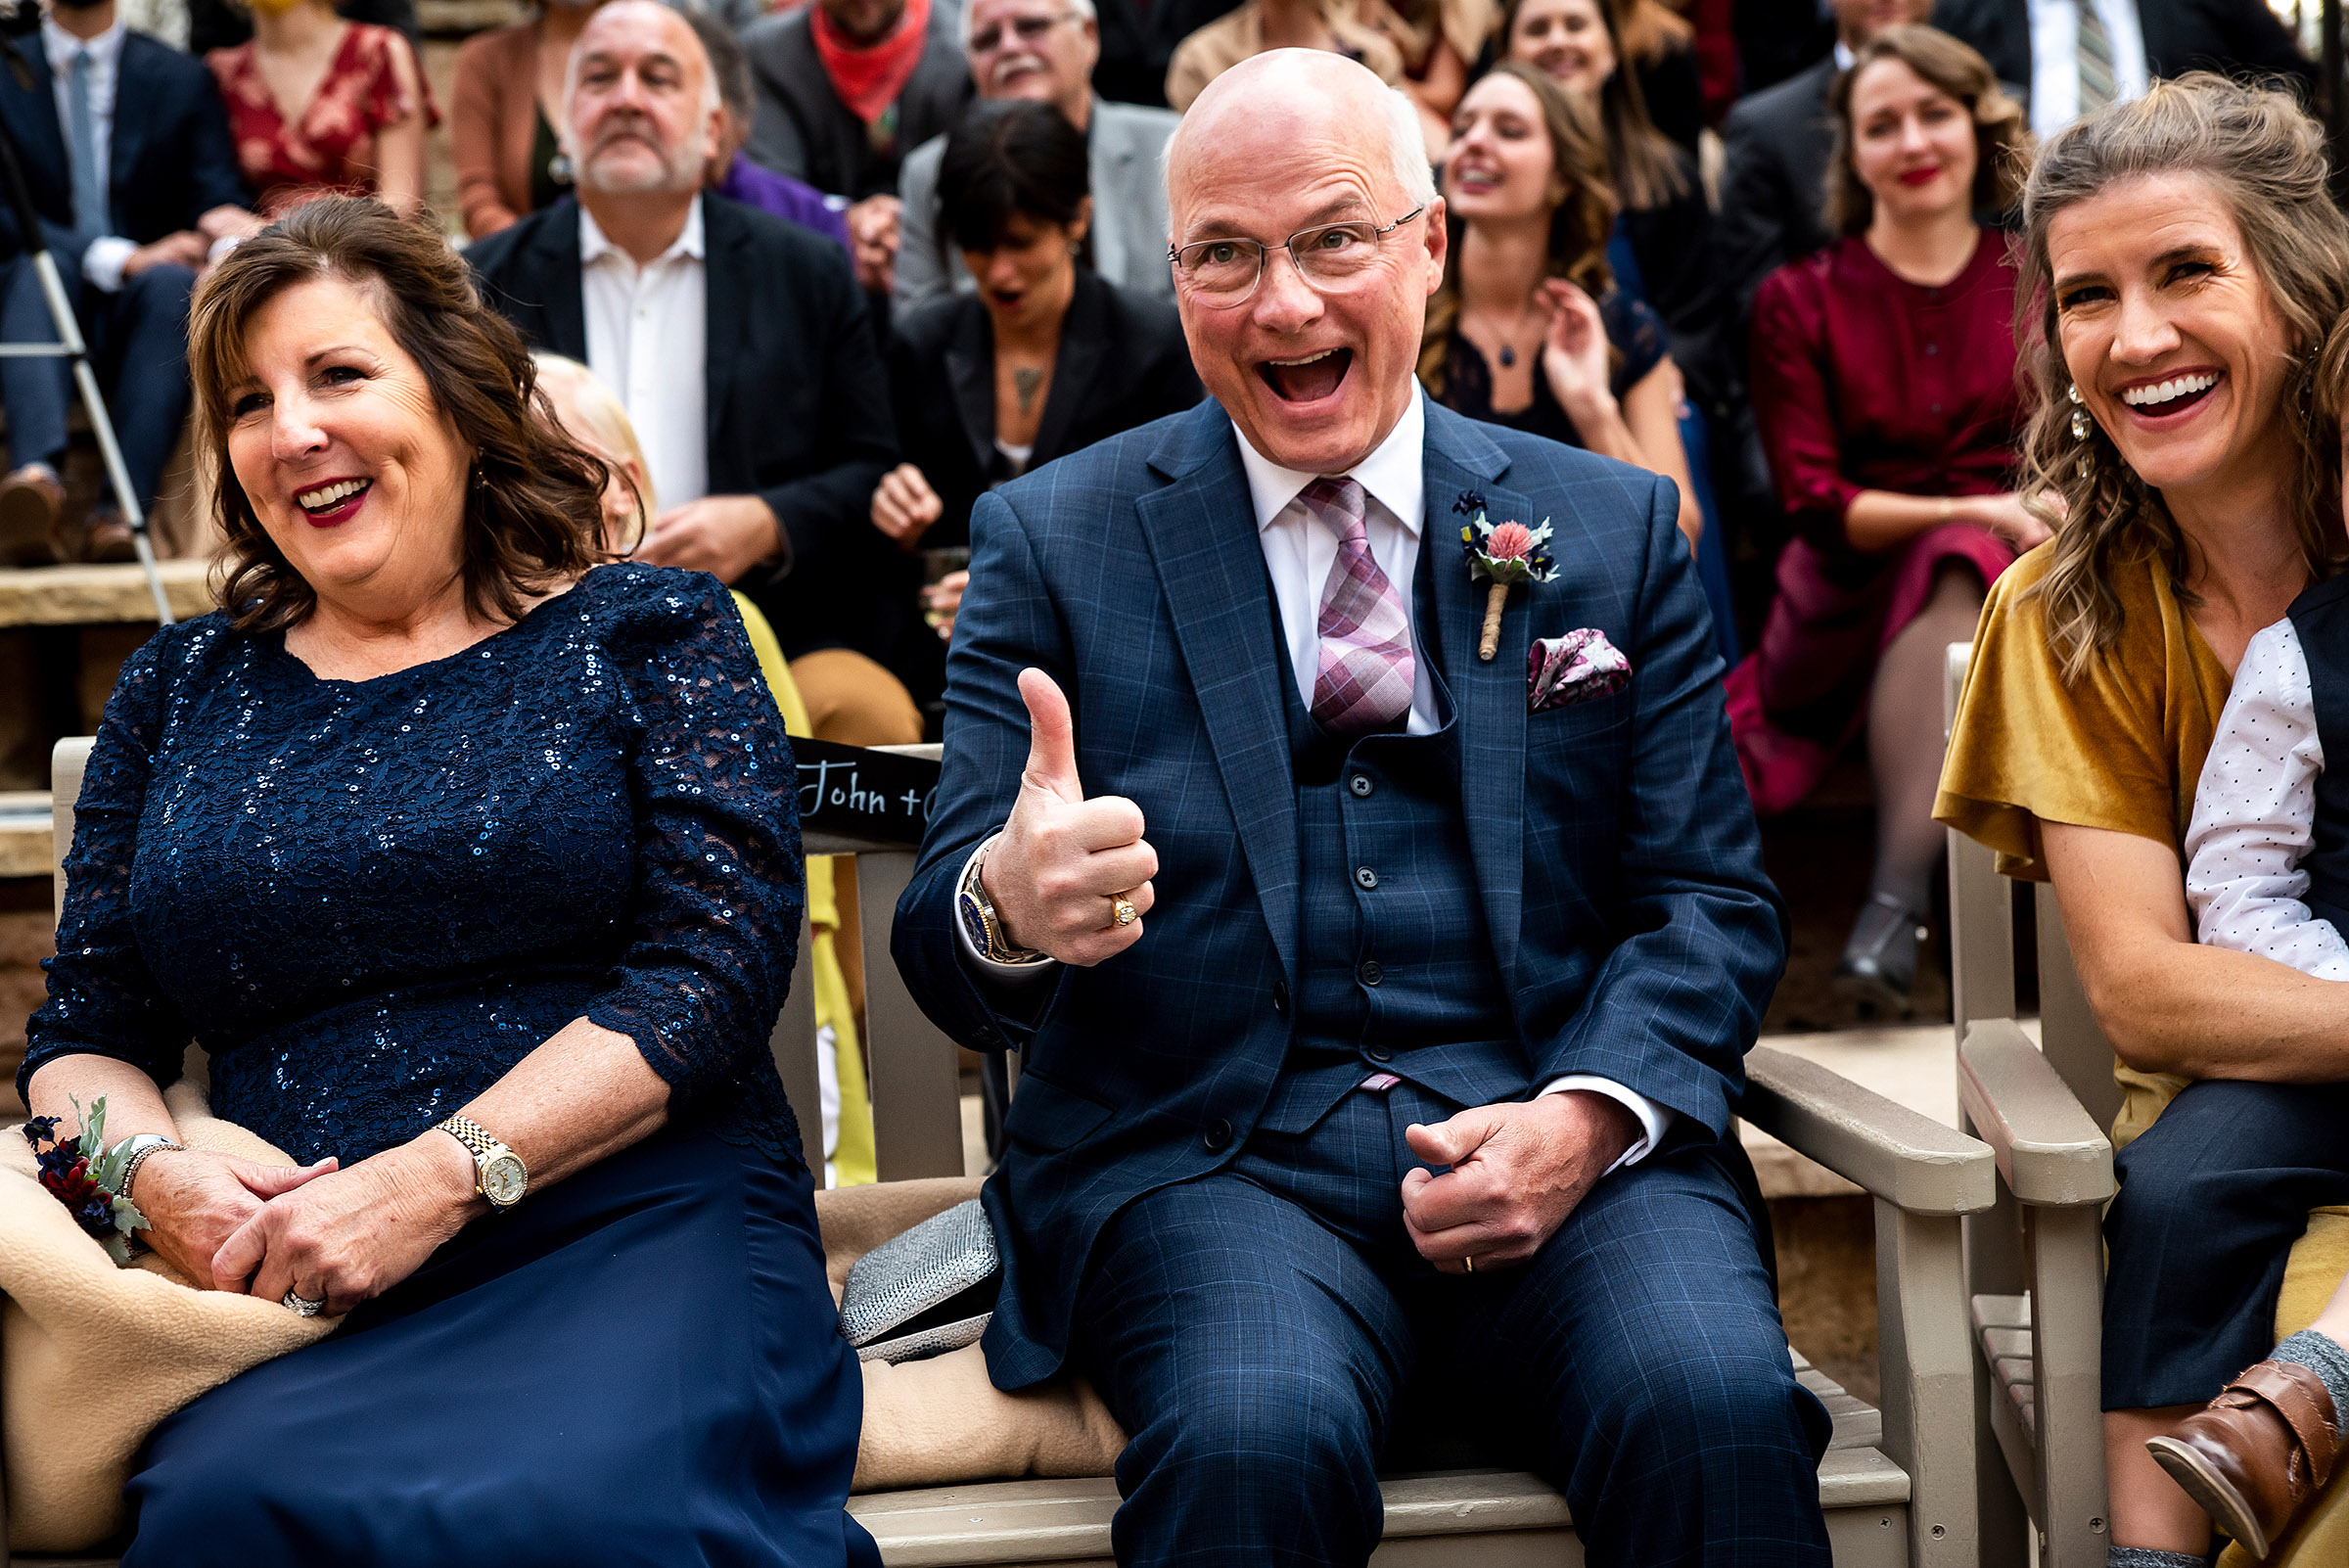 thumbs-up-from-dad-at-ceremony-la-plante-photo